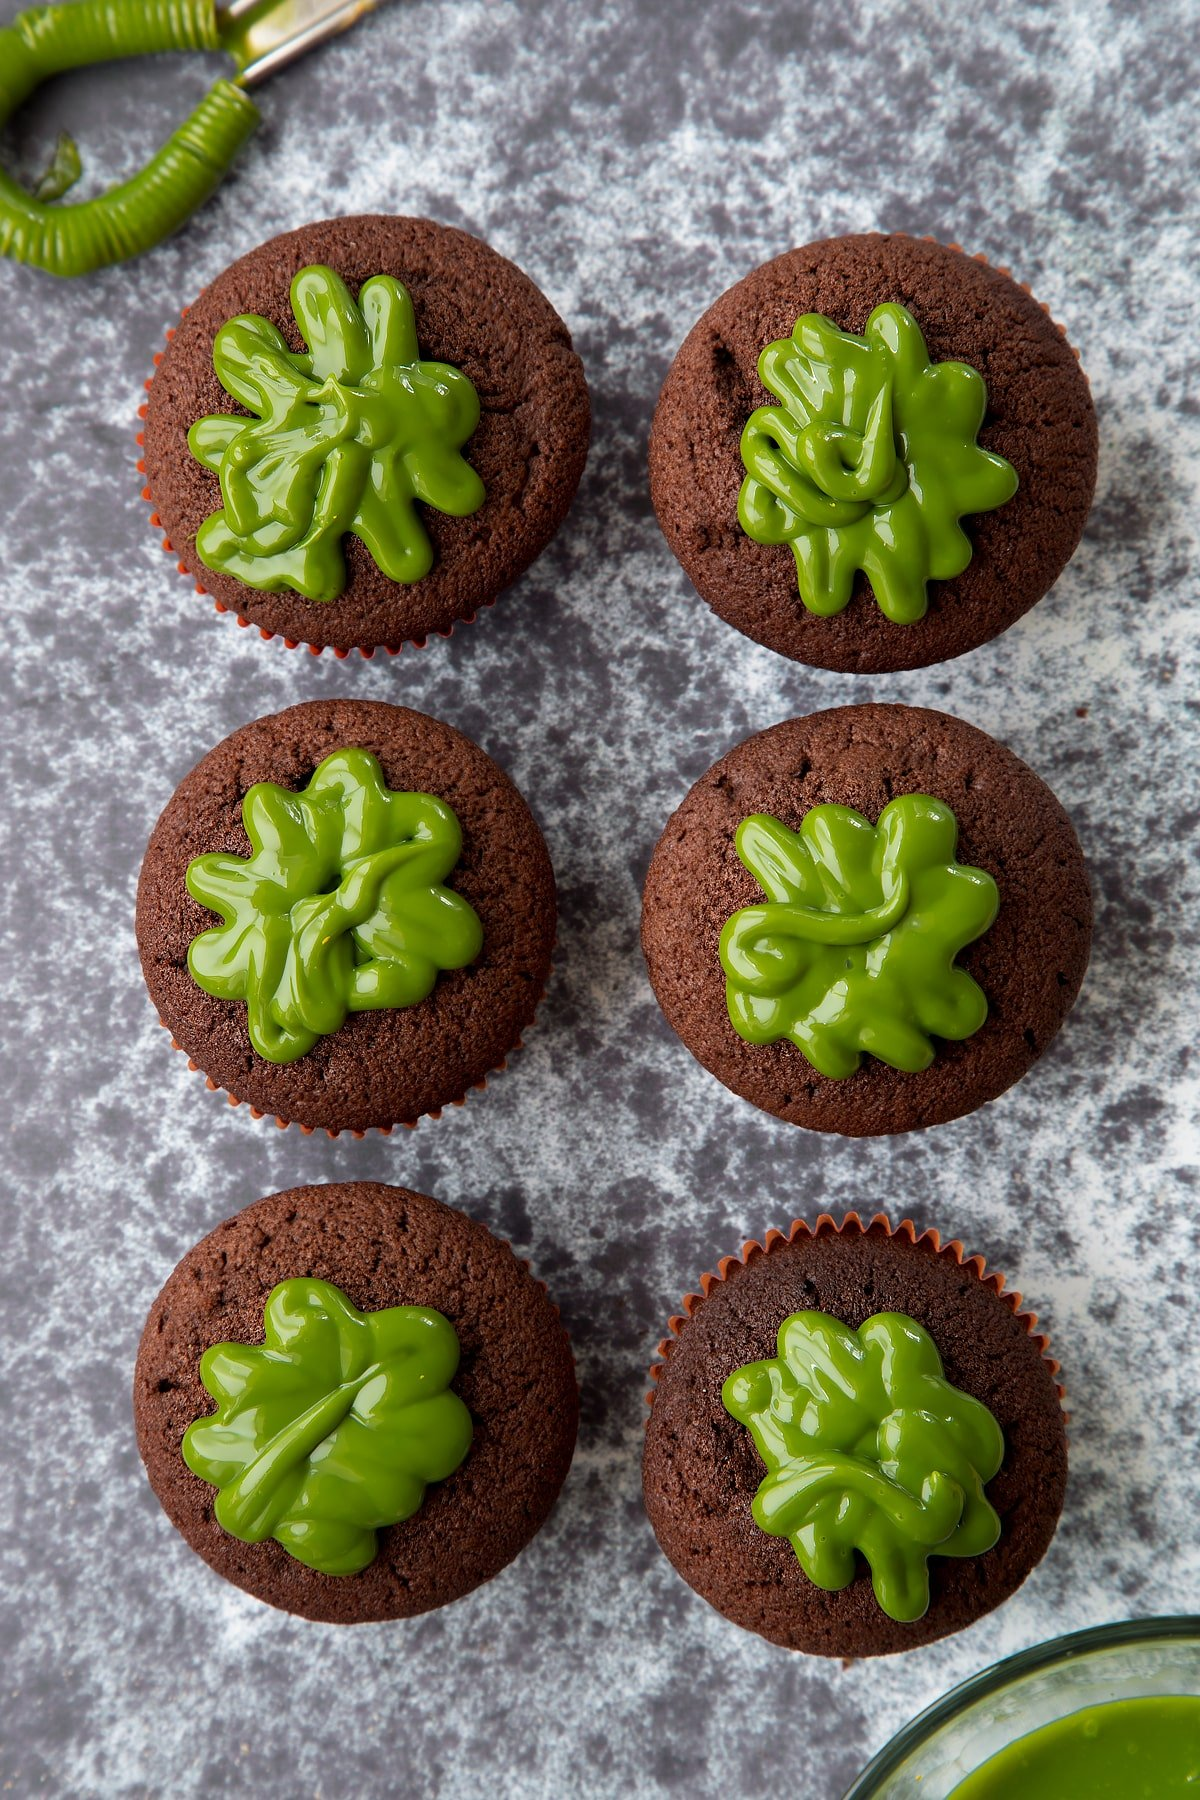 Six chocolate cupcakes shown from above. The cupcakes have been filled with dyed-green caramel.